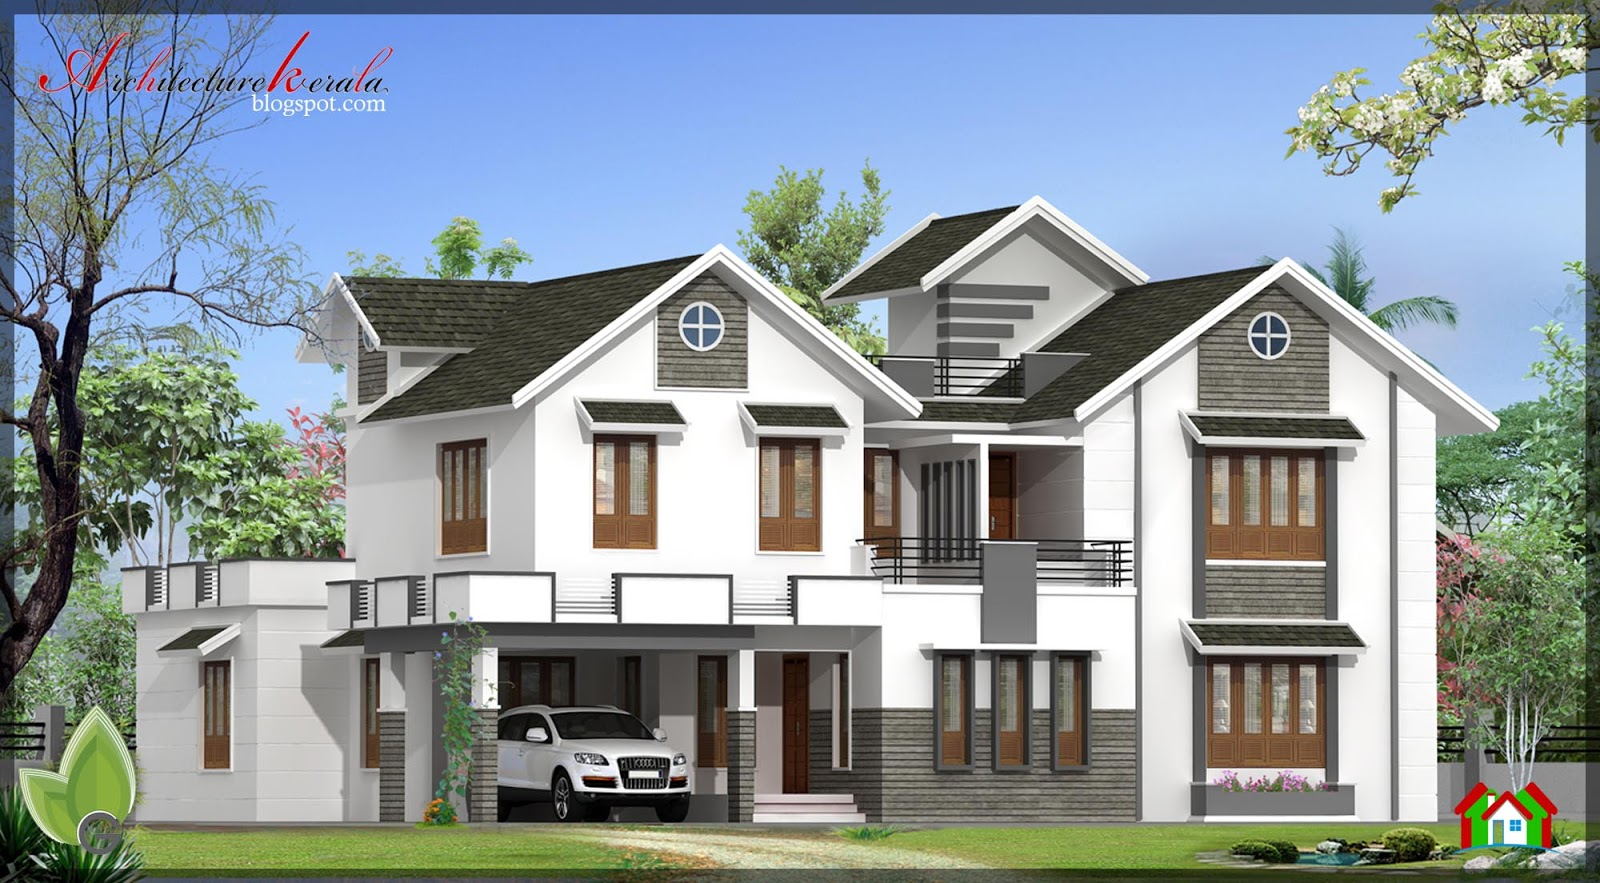 3000 sq ft house elevation architecture kerala for 3000 sq ft building